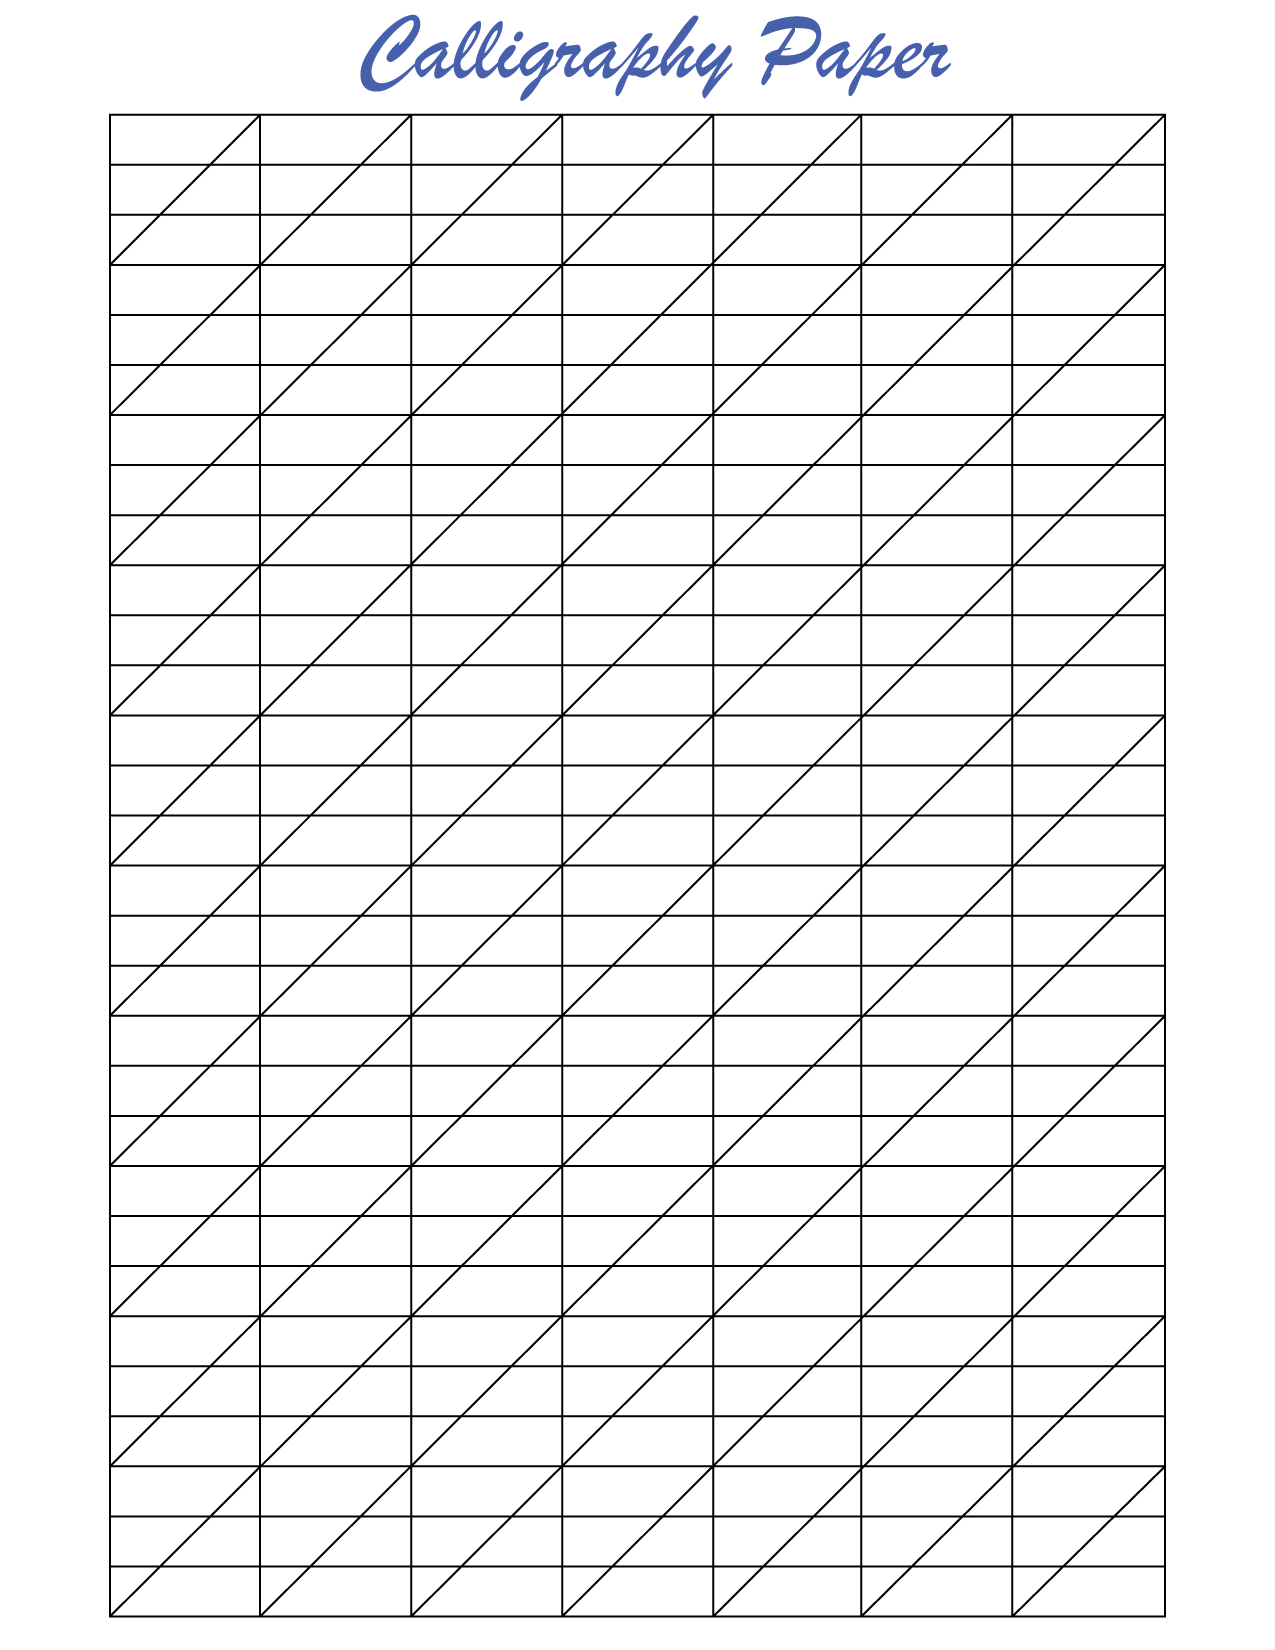 Blank calligraphy paper to print out